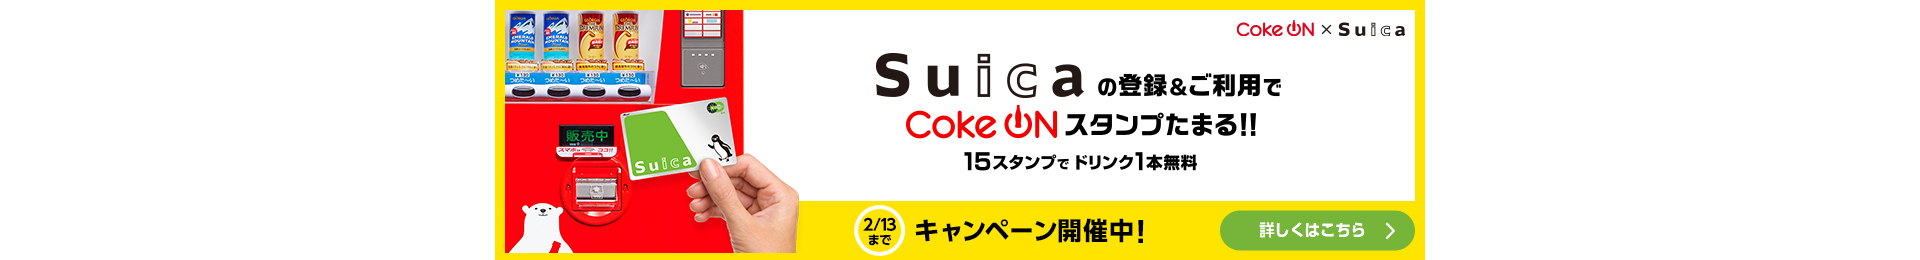 「Coke ON IC × Suica Coke ONでSuicaを使おう!」キャンペーン